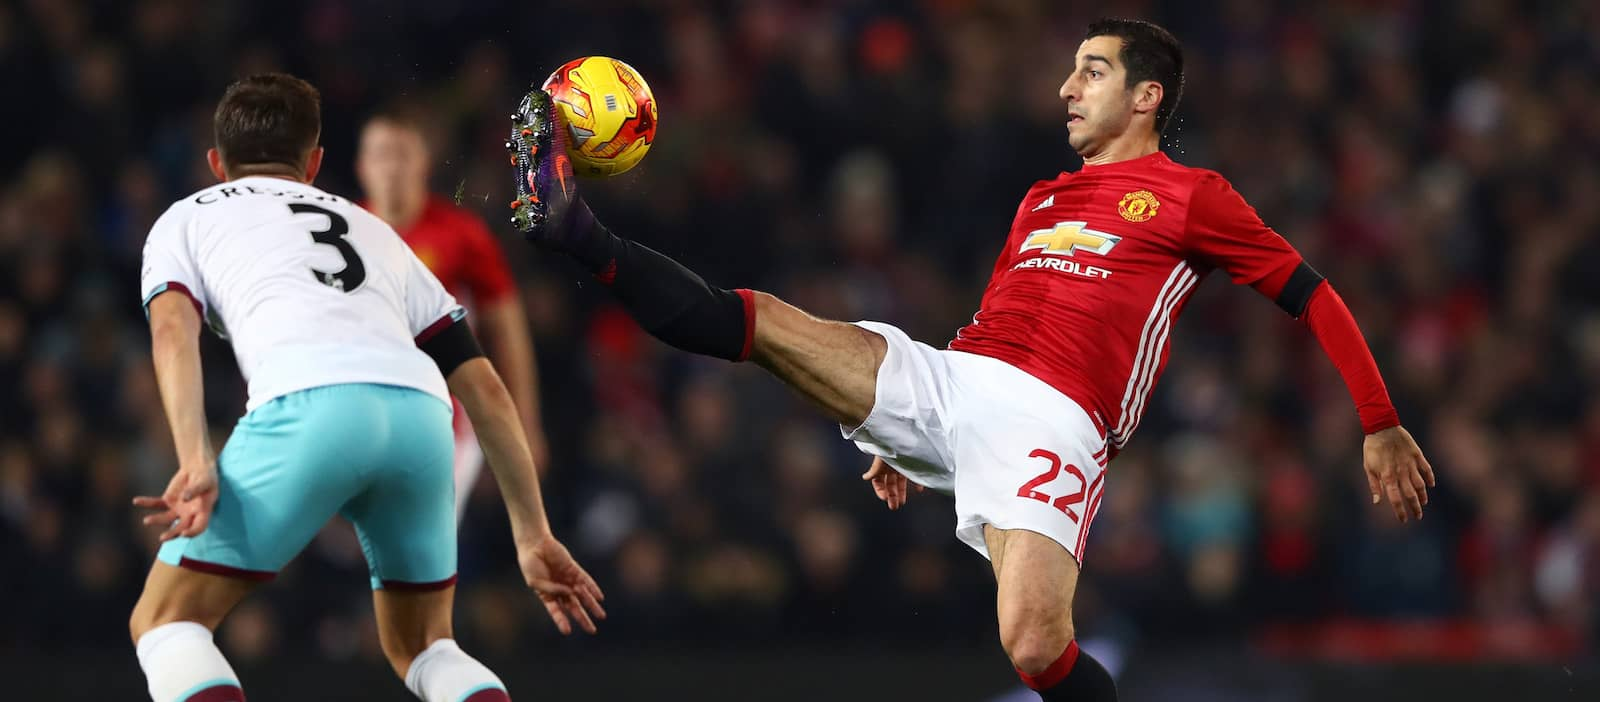 https://i1.wp.com/images.thepeoplesperson.com/wp-content/uploads/2016/11/30205039/Mkhitaryan-min.jpg